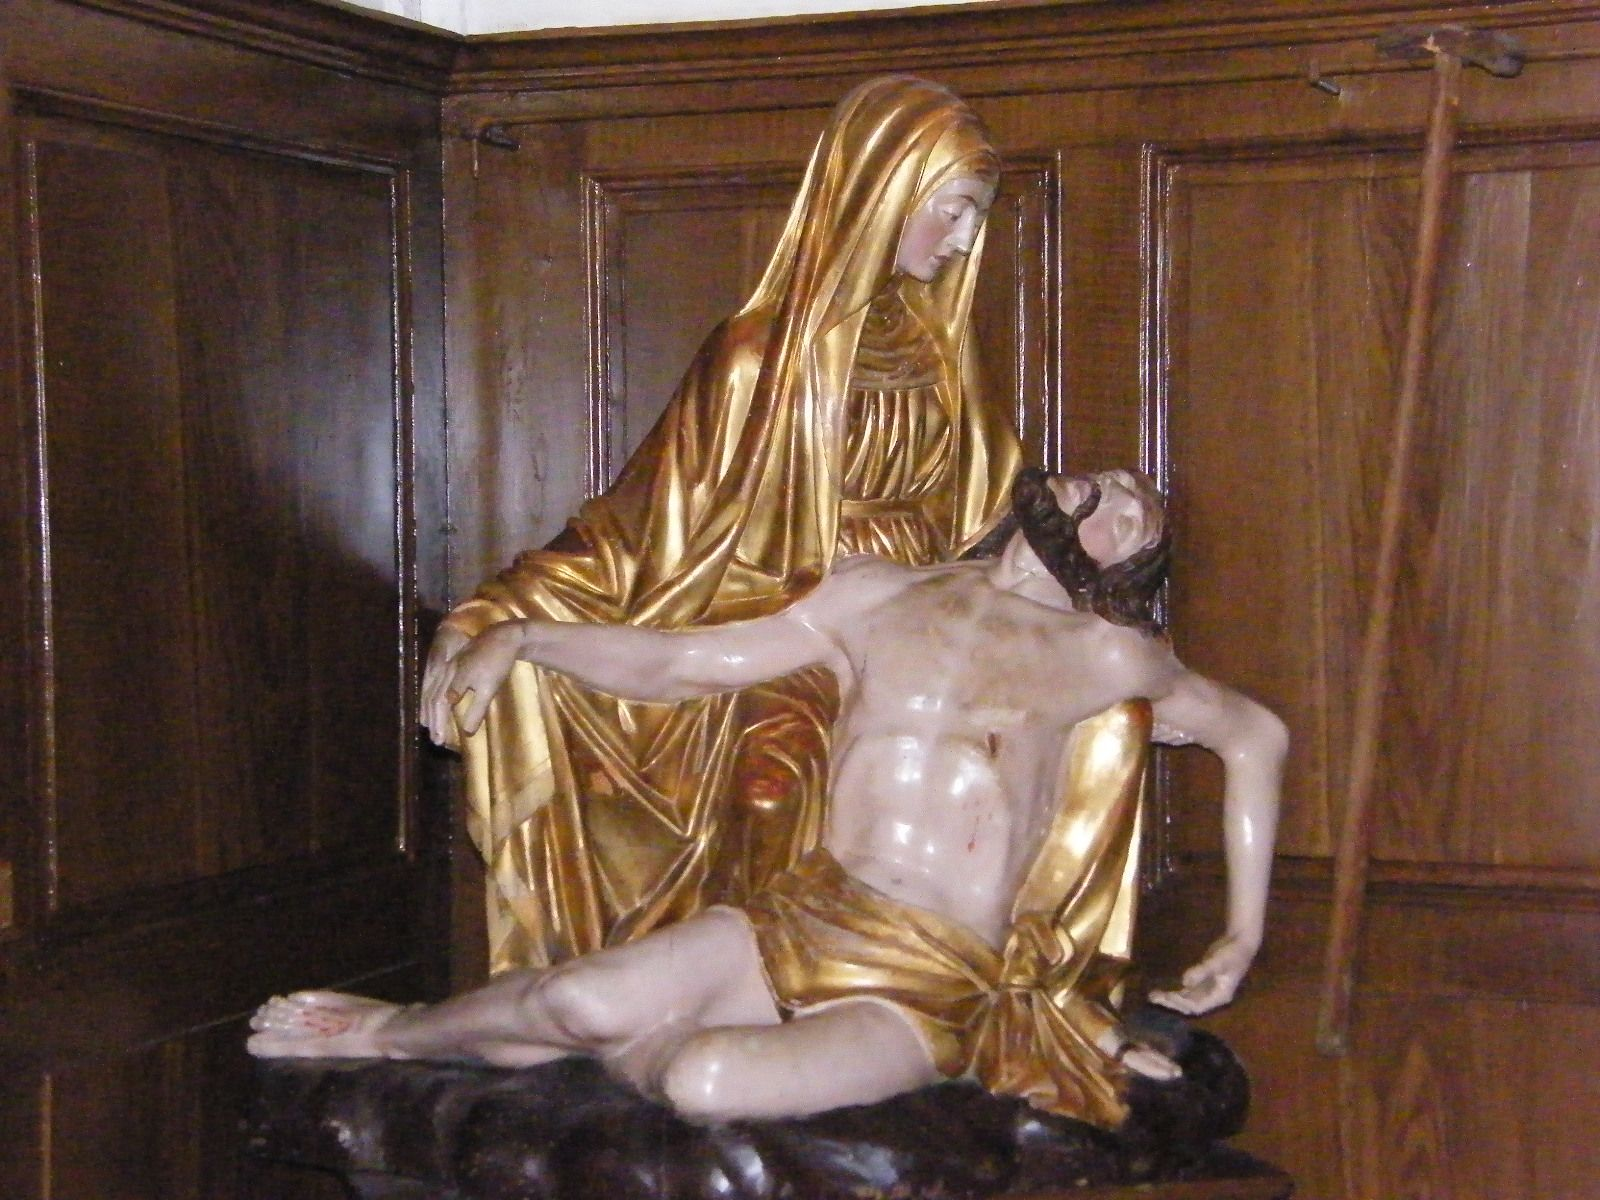 france - ars - near lyon - st.john vianney church - incorrupt body of st.john vianney - some patient left his walking stick here because he can walk by himself